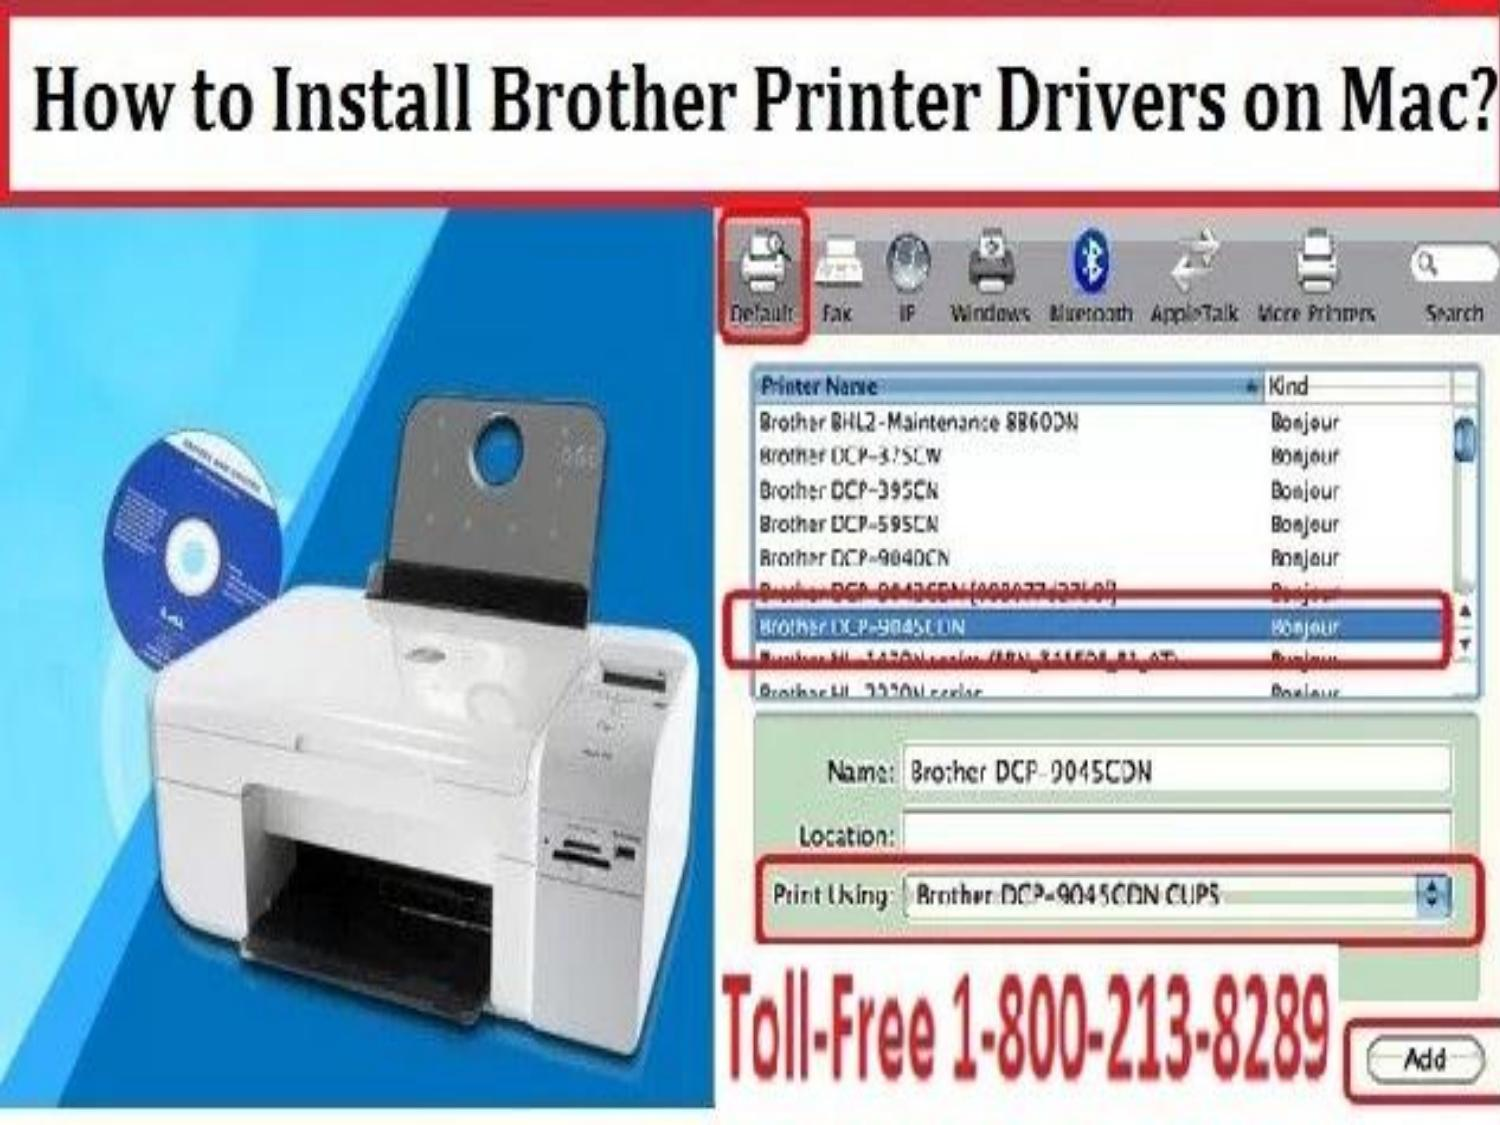 Install brother printer drivers on mac or 1800 213 8289 by